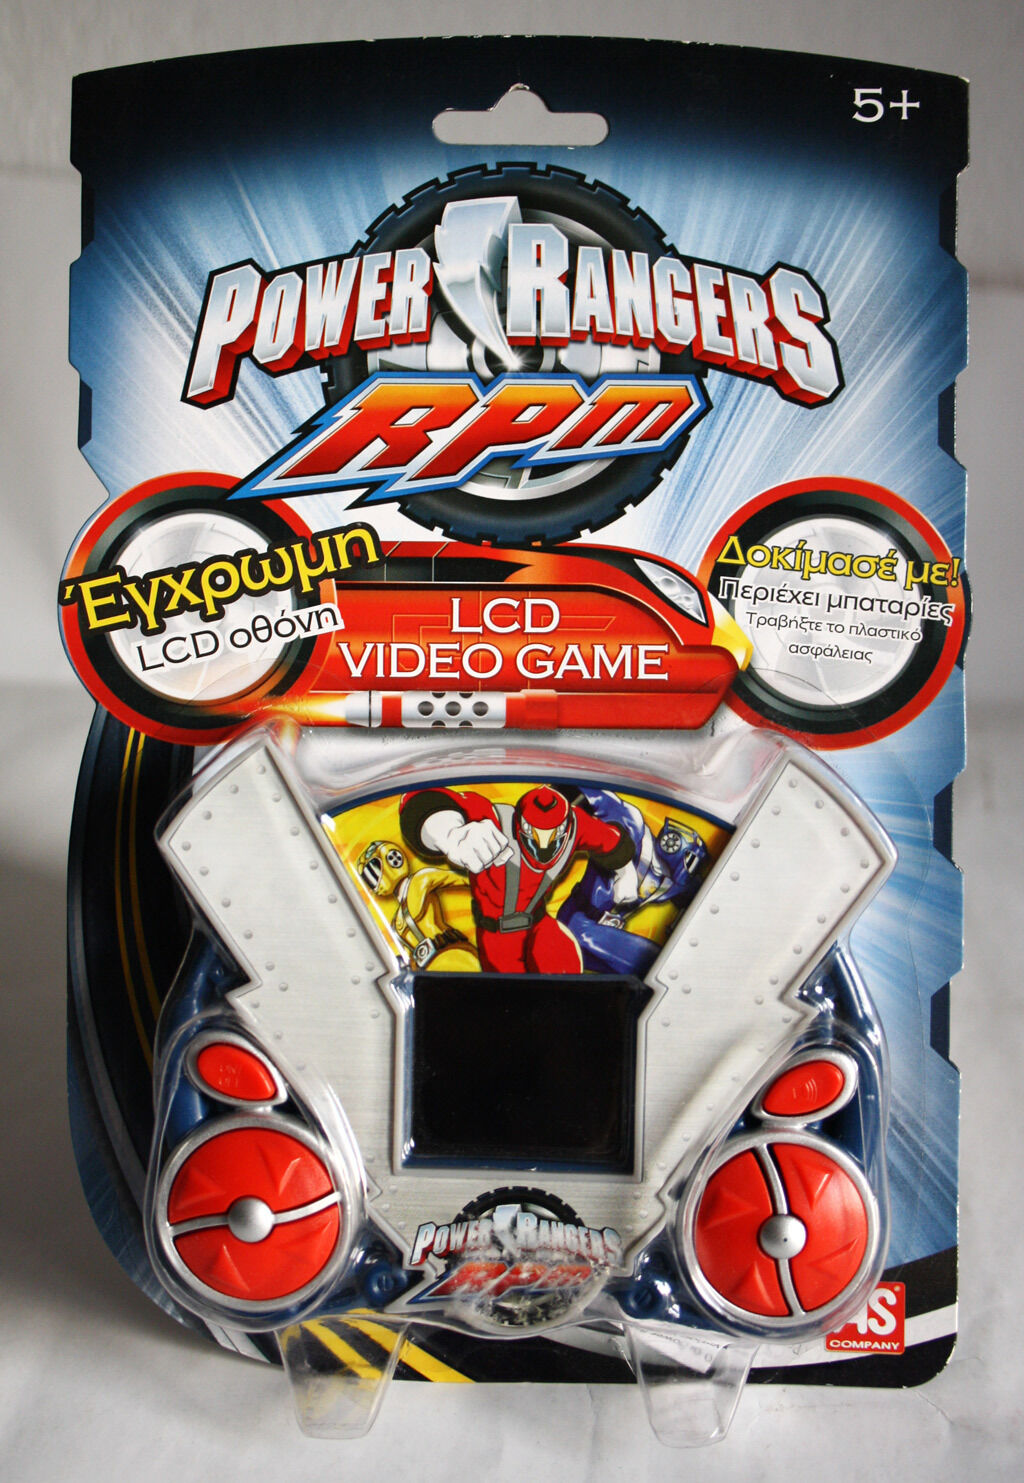 RARE 2008 POWER RANGERS RPM COLOR LCD HANDHELD ELECTRONIC GAME BRAND NEW